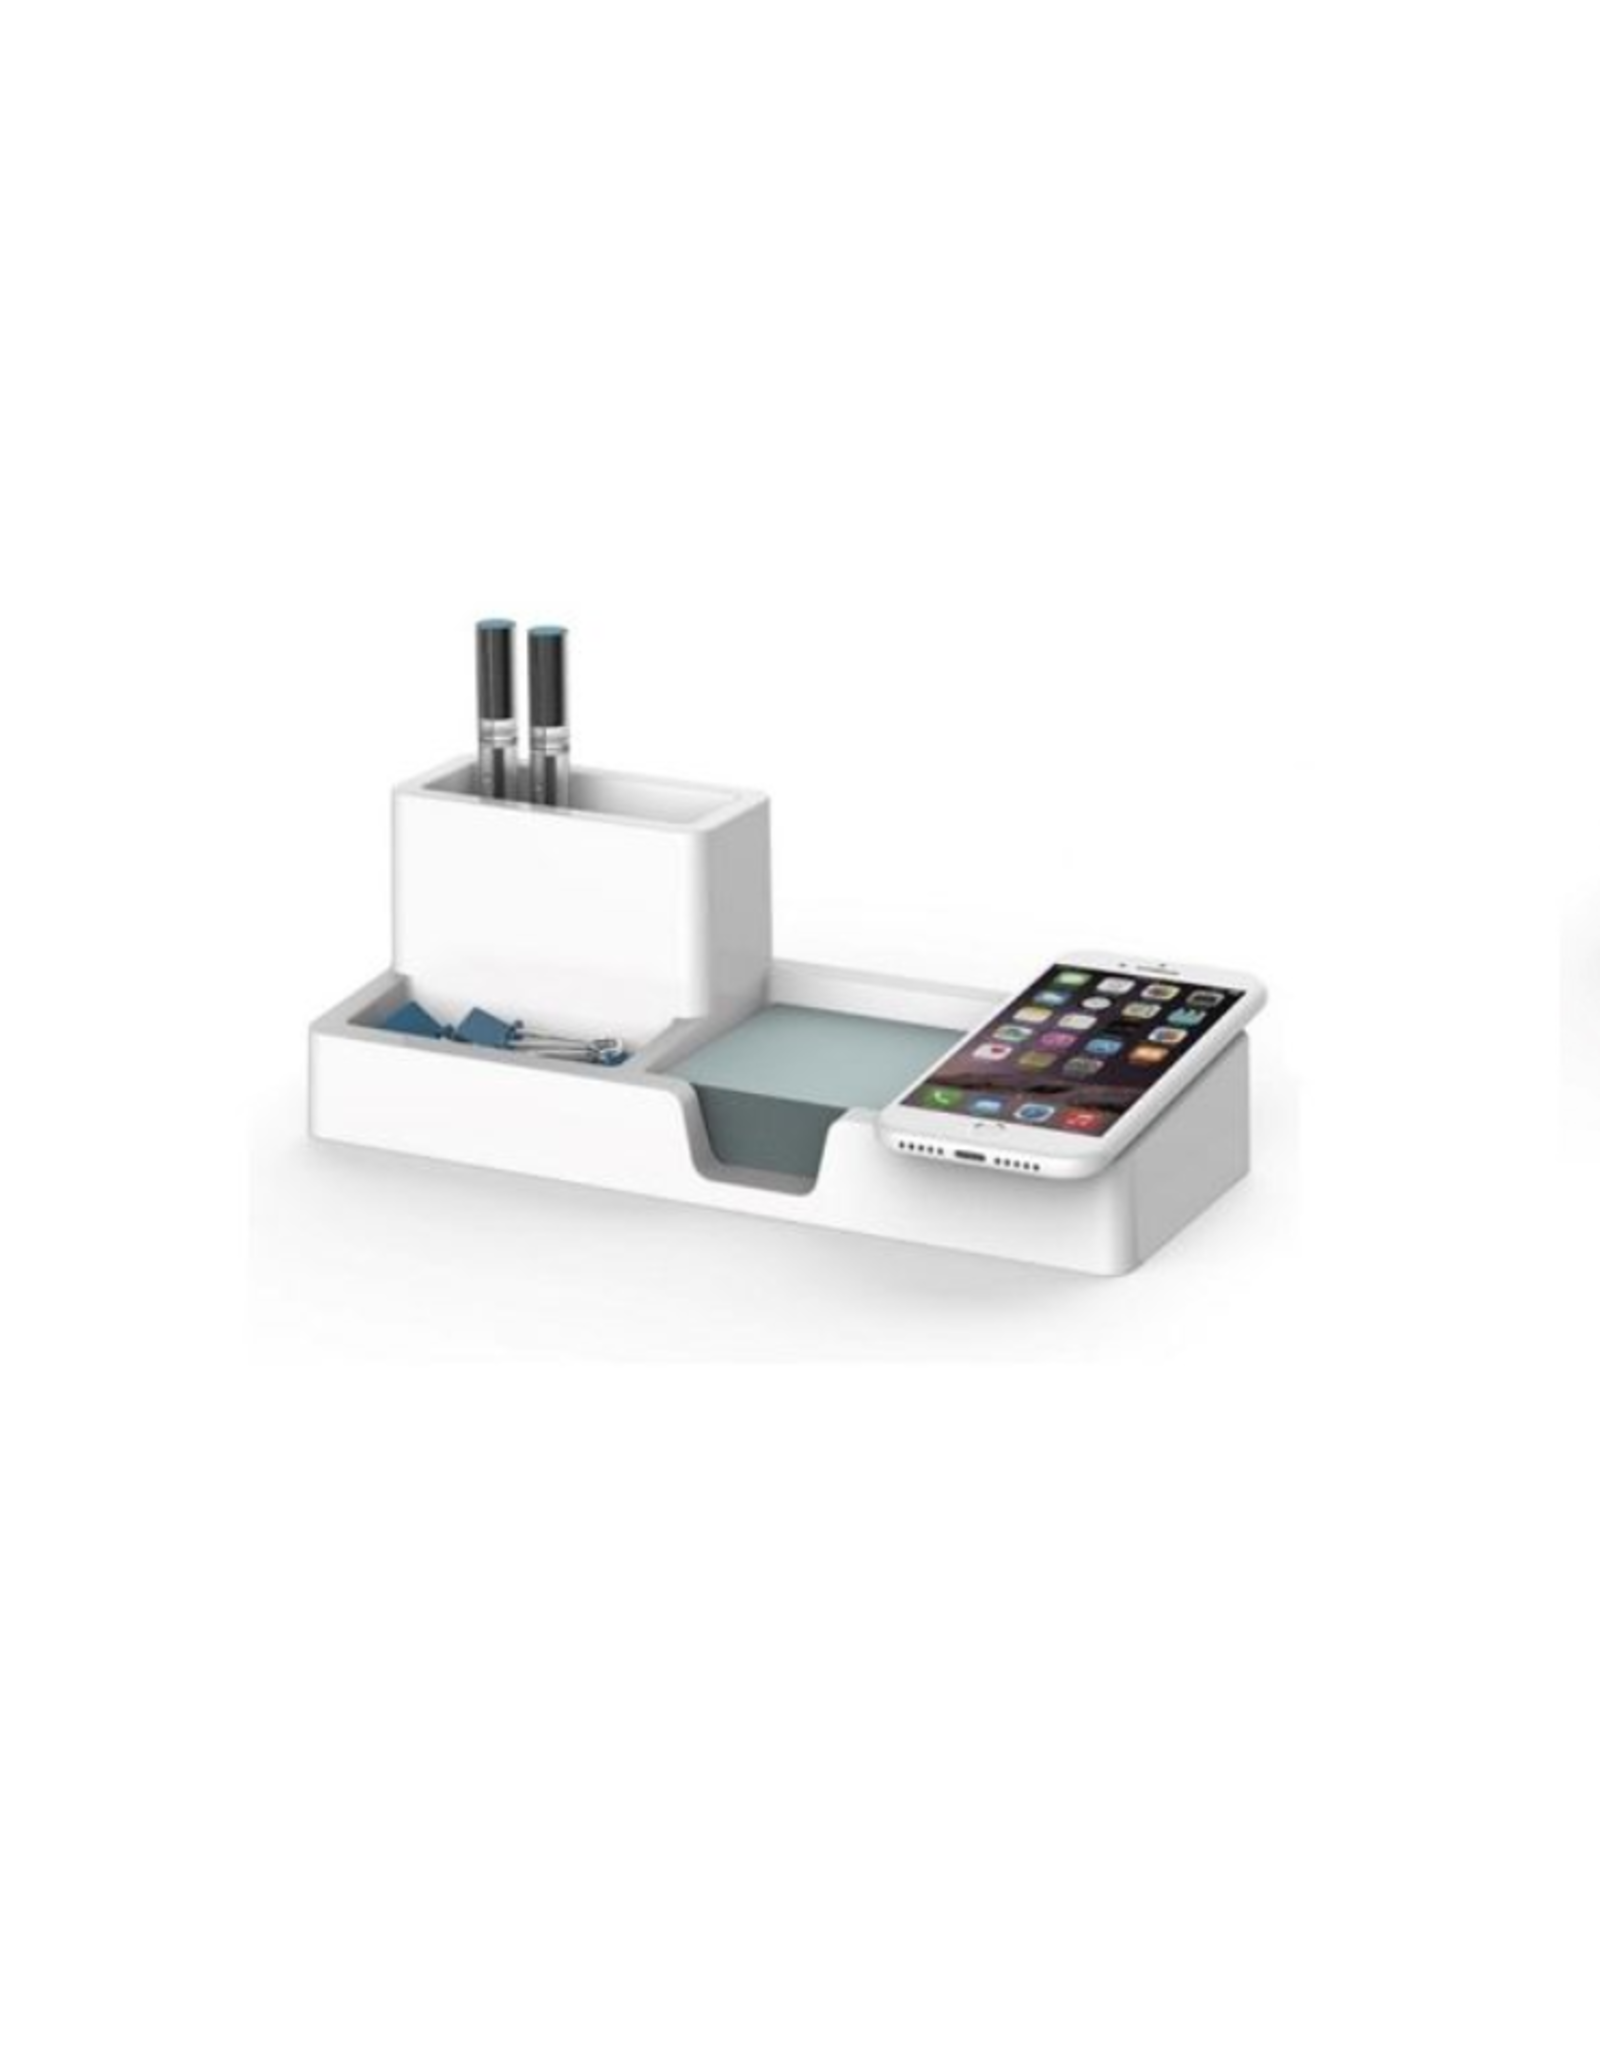 Artistic Products DESK ORGANIZER-SMART CHARGE Qi COMPATIBLE, WHITE